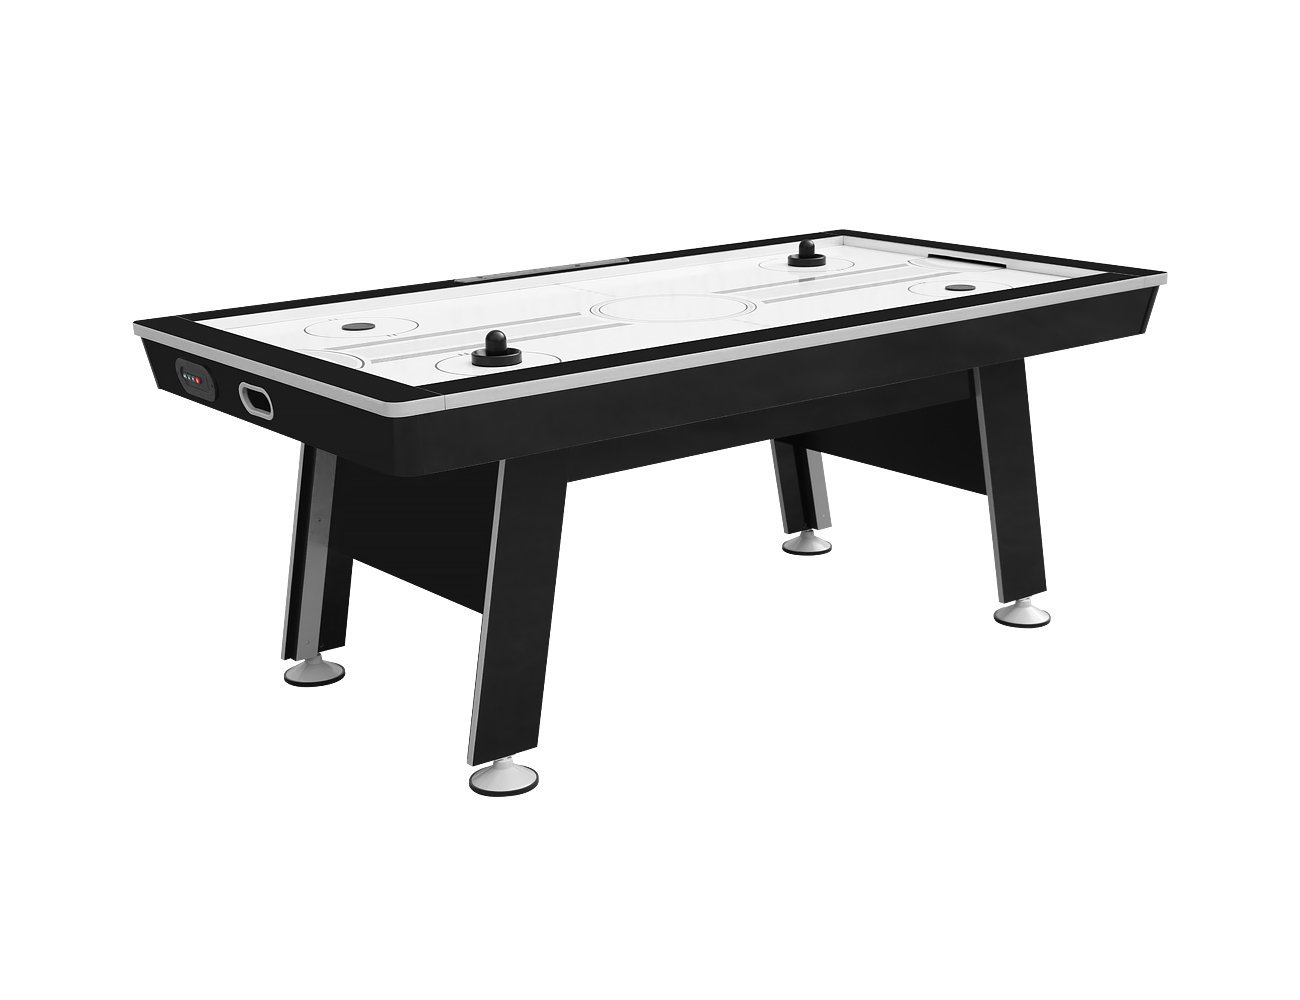 84 Inch Air Hockey Table